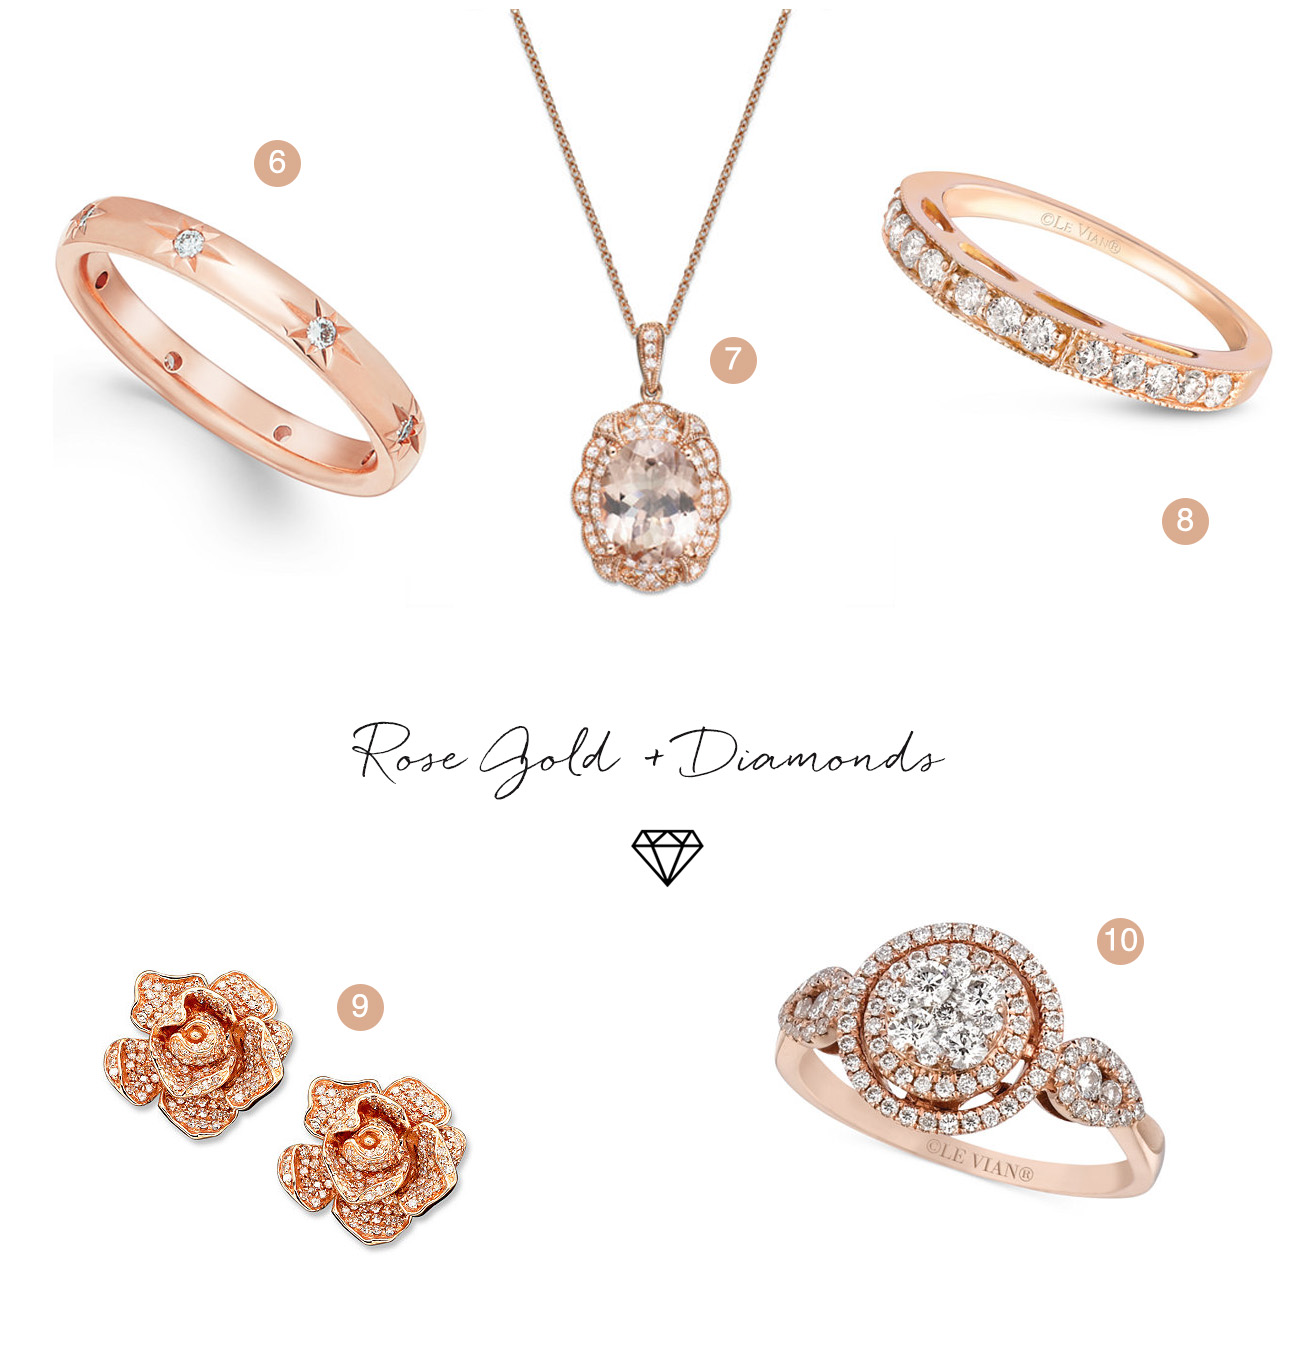 Rose Gold Diamond Jewelry